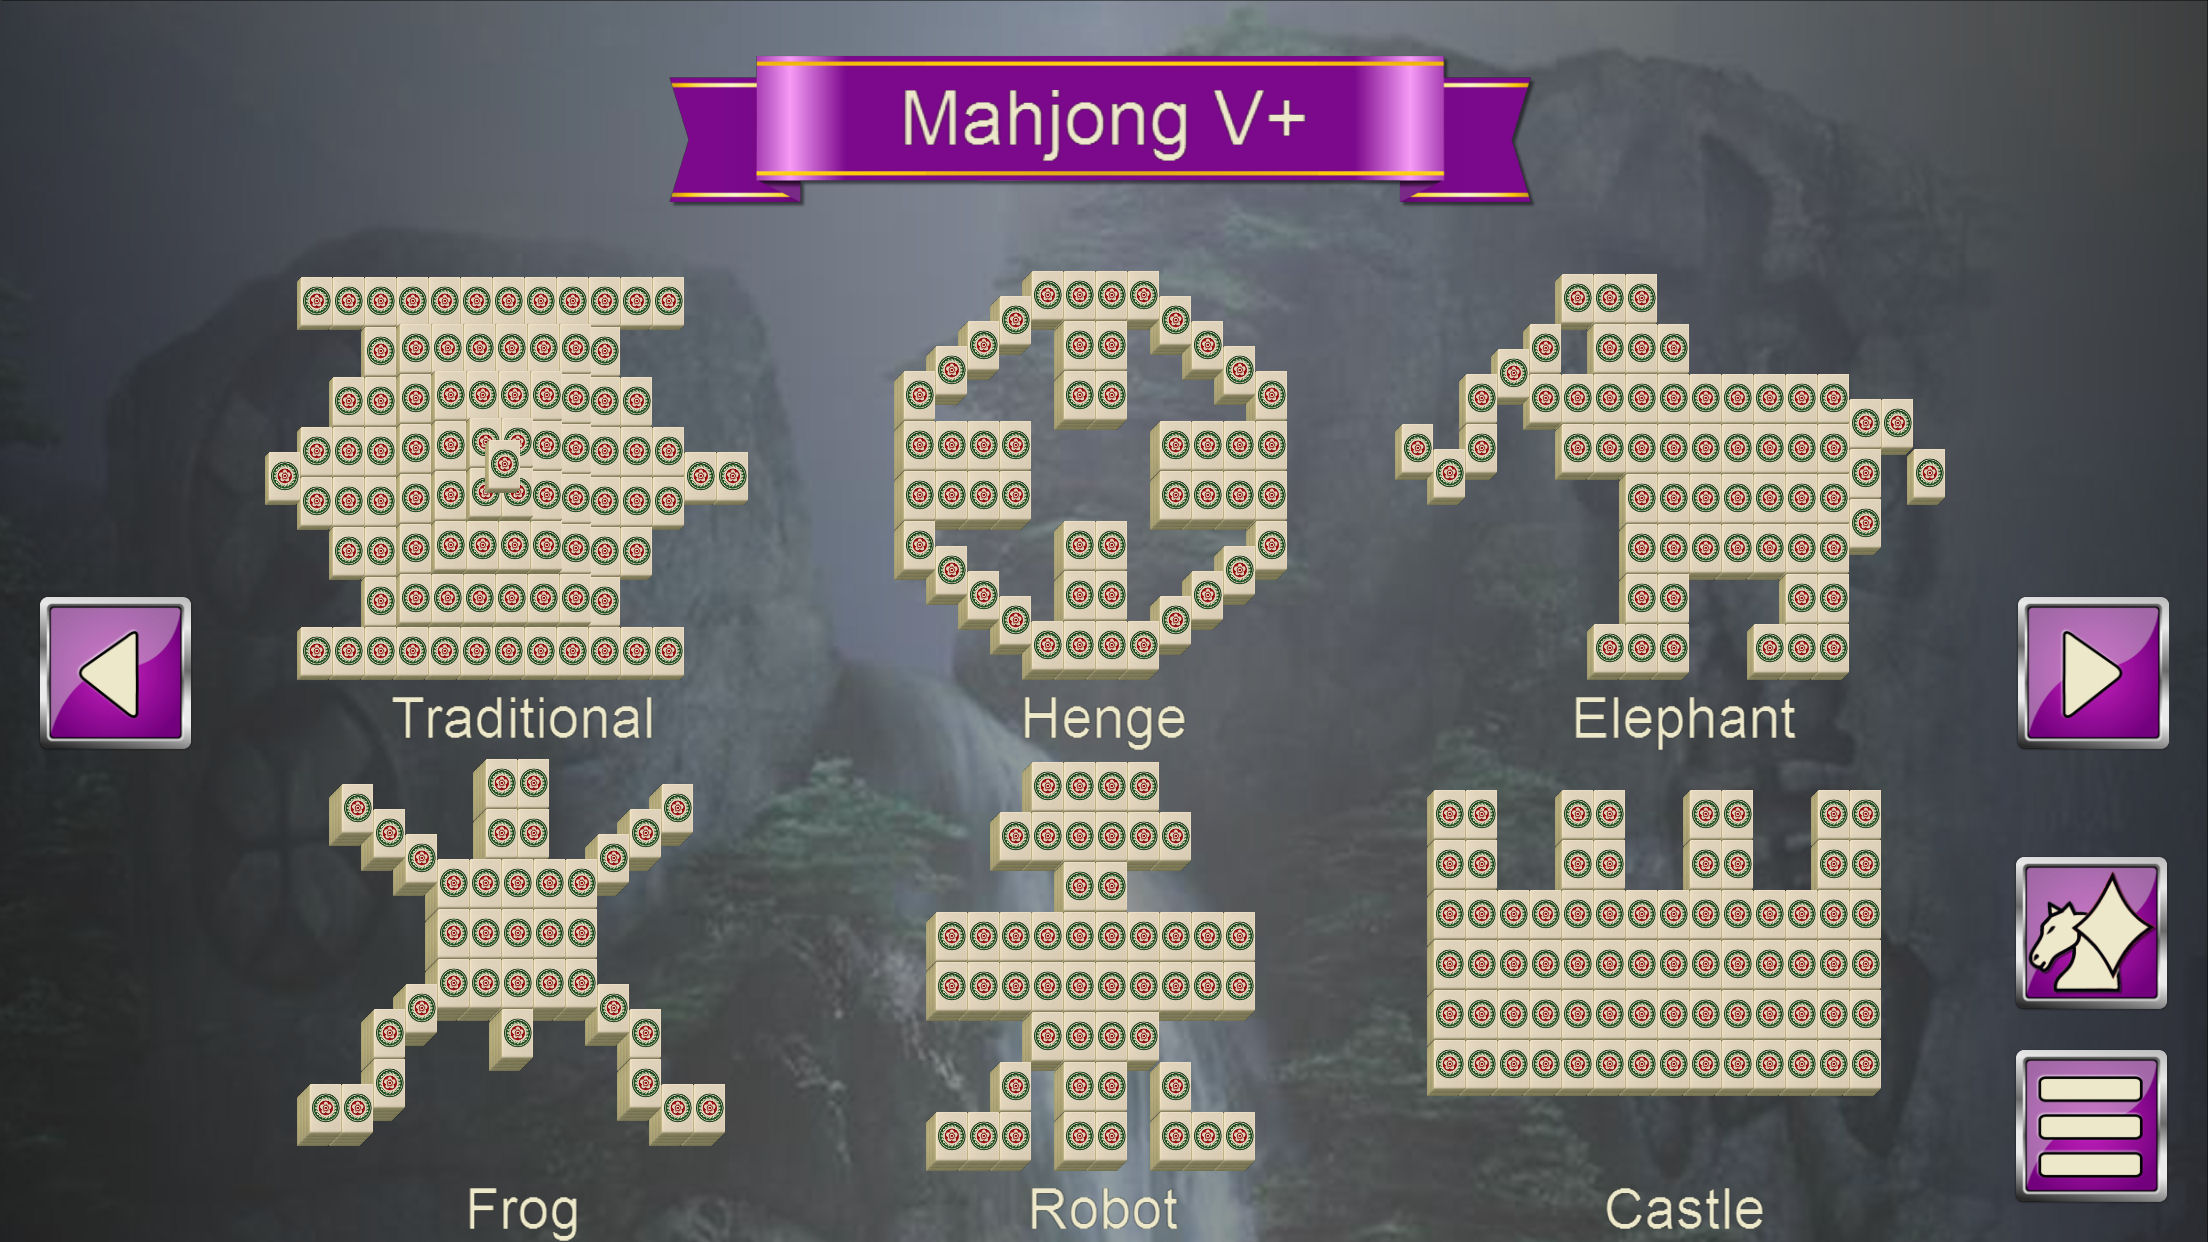 Mahjong_En_Layouts_2208x1242